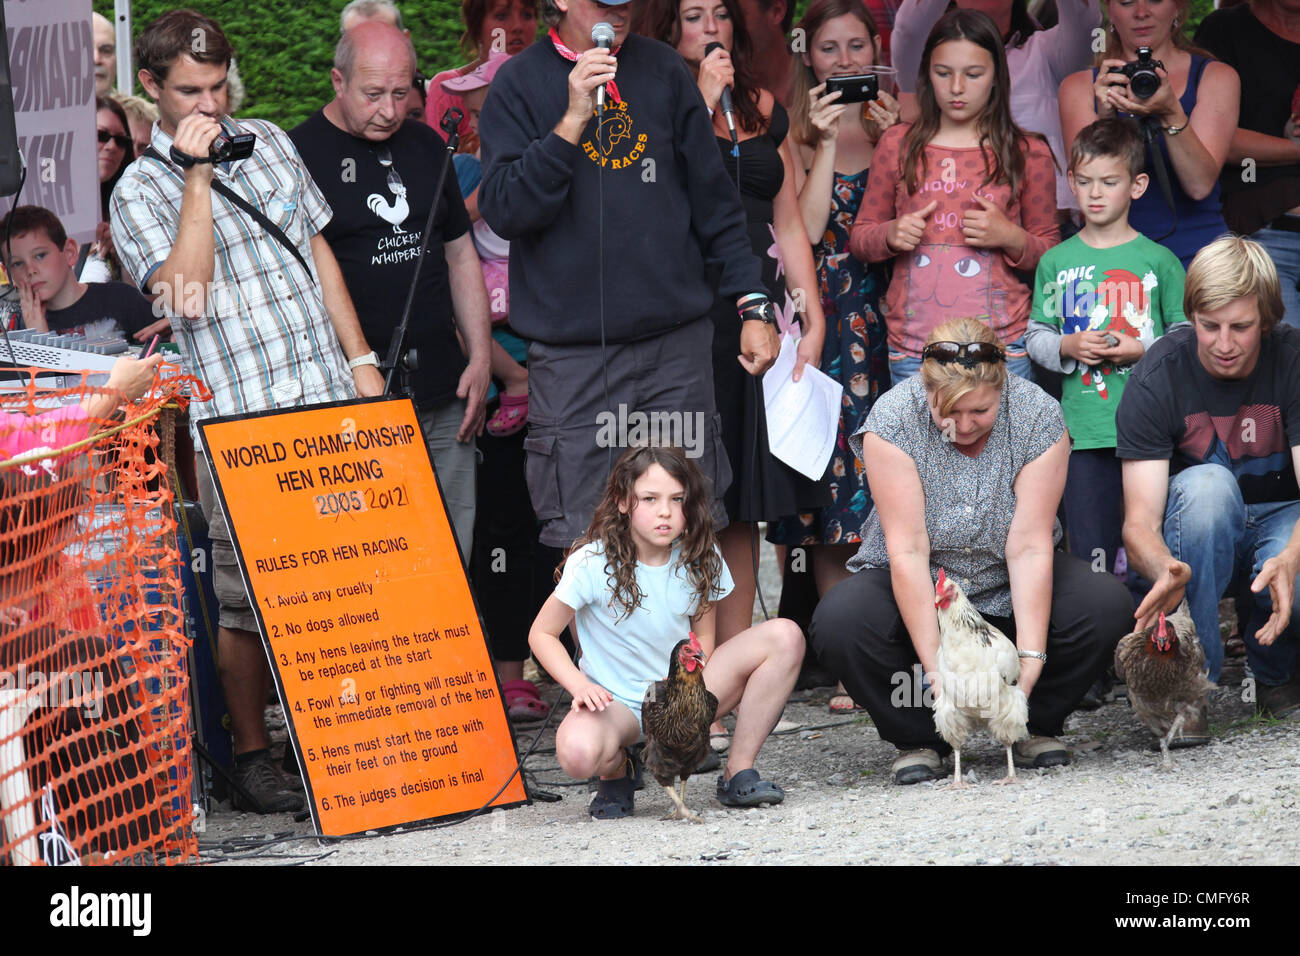 Annual World Hen Racing Championship held on August 4th 2012 at the Barley Mow Public House in the Derbyshire Peak - Stock Image